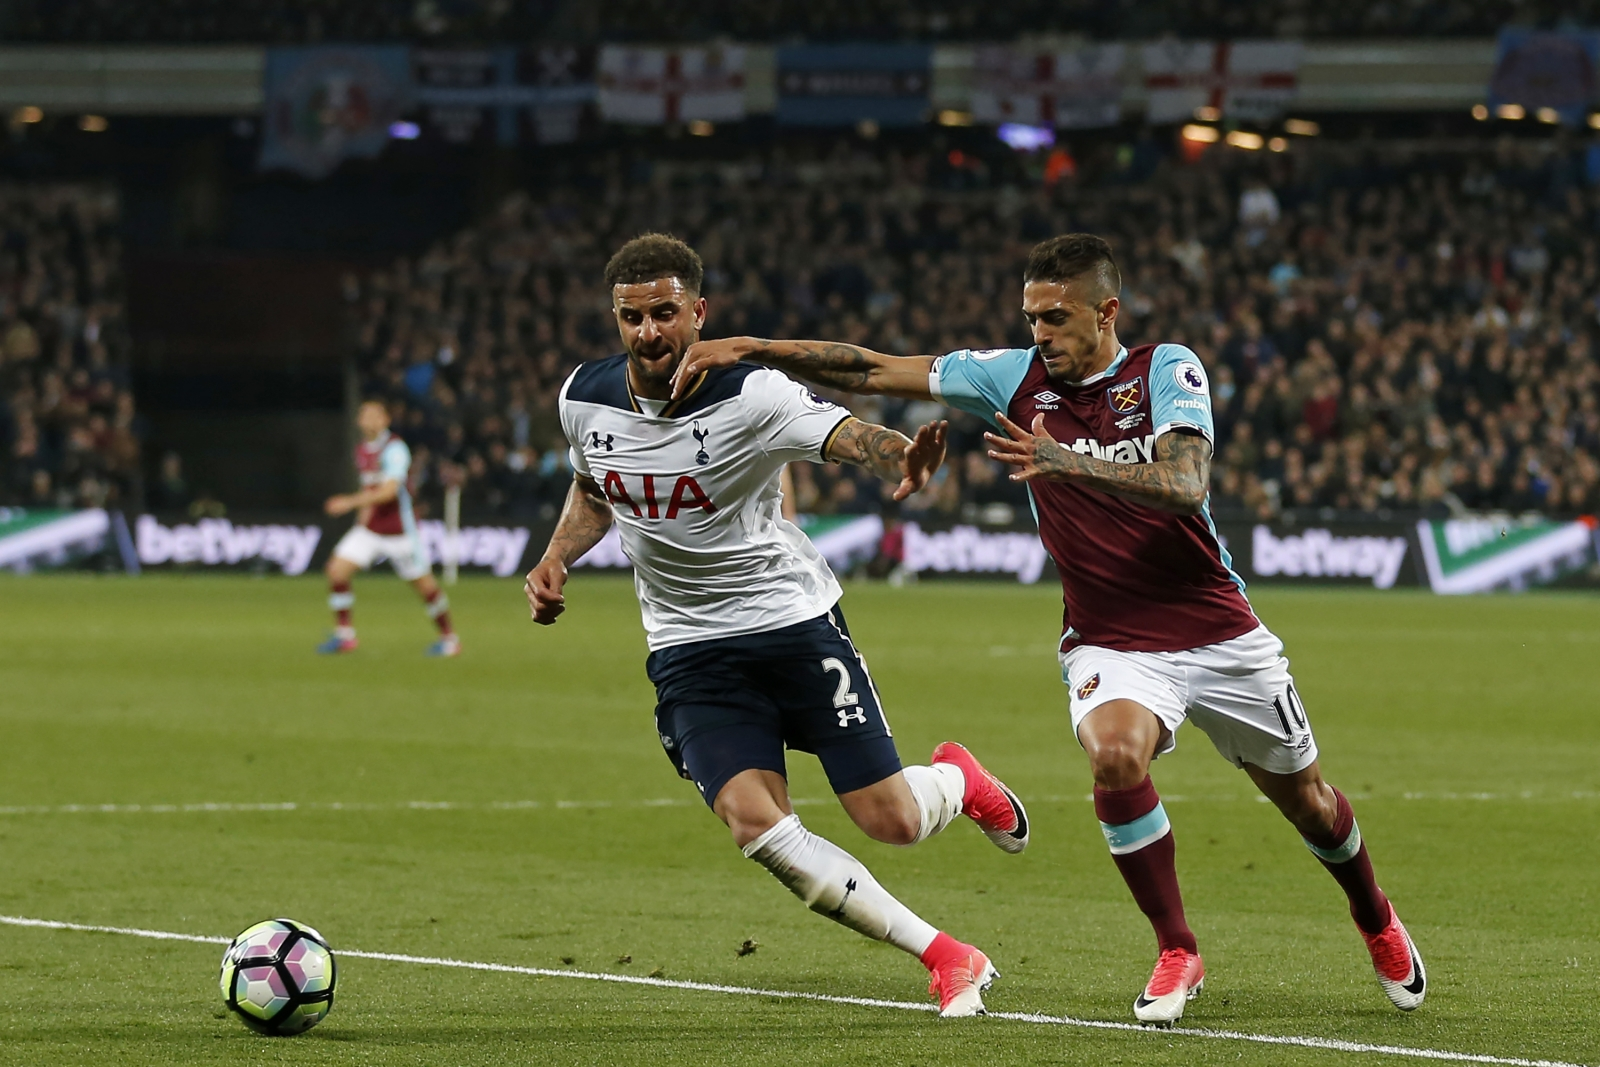 Tottenham's Kane tops Premier League scoring charts